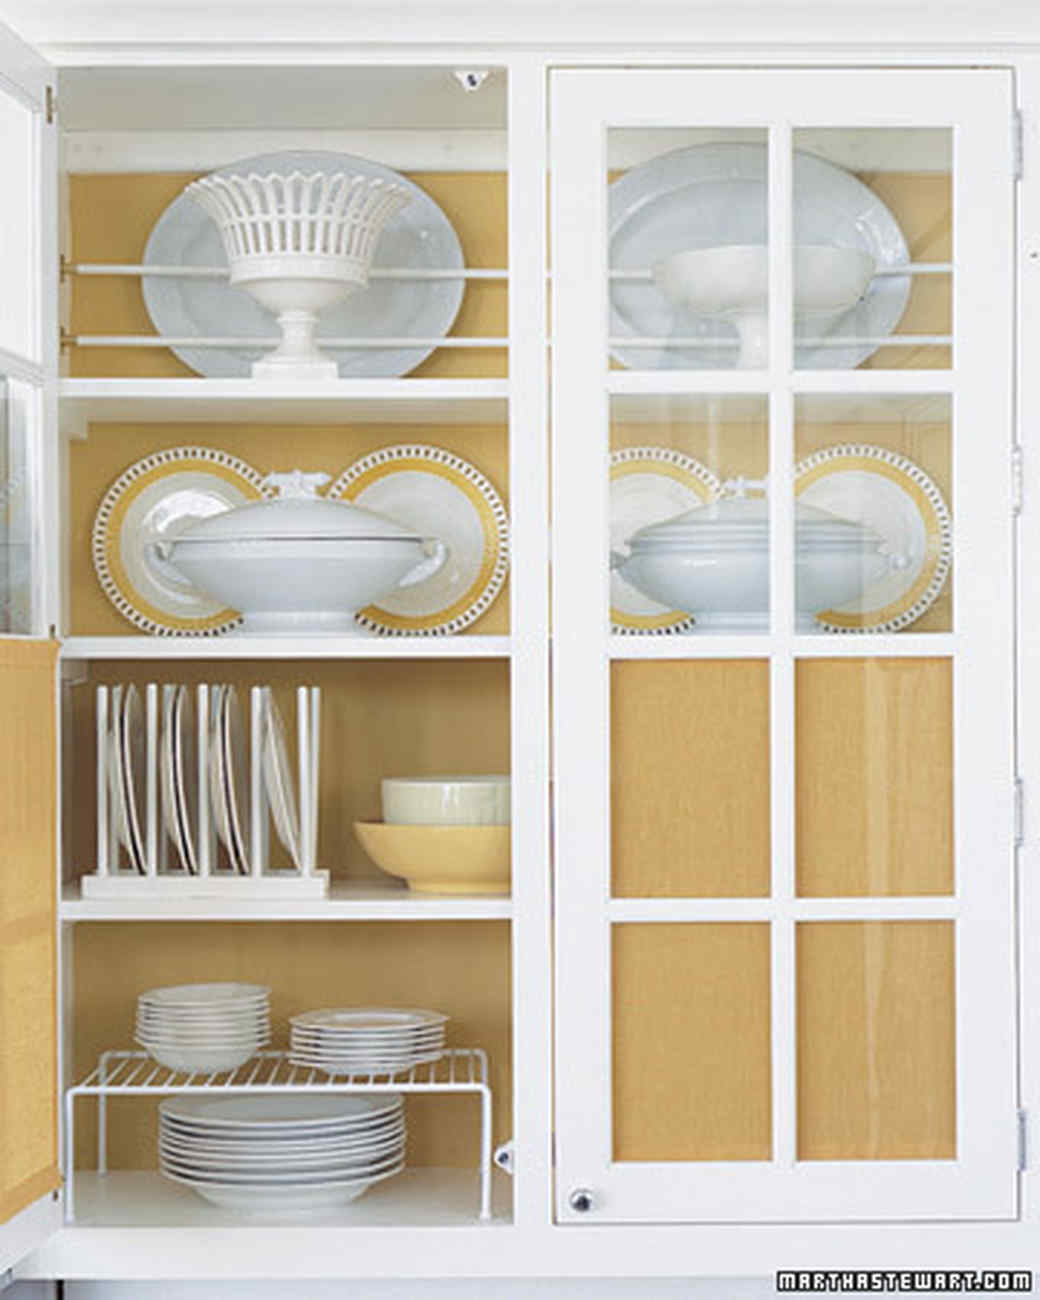 Kitchen Organization Ideas Small Spaces: Small Kitchen Storage Ideas For A More Efficient Space